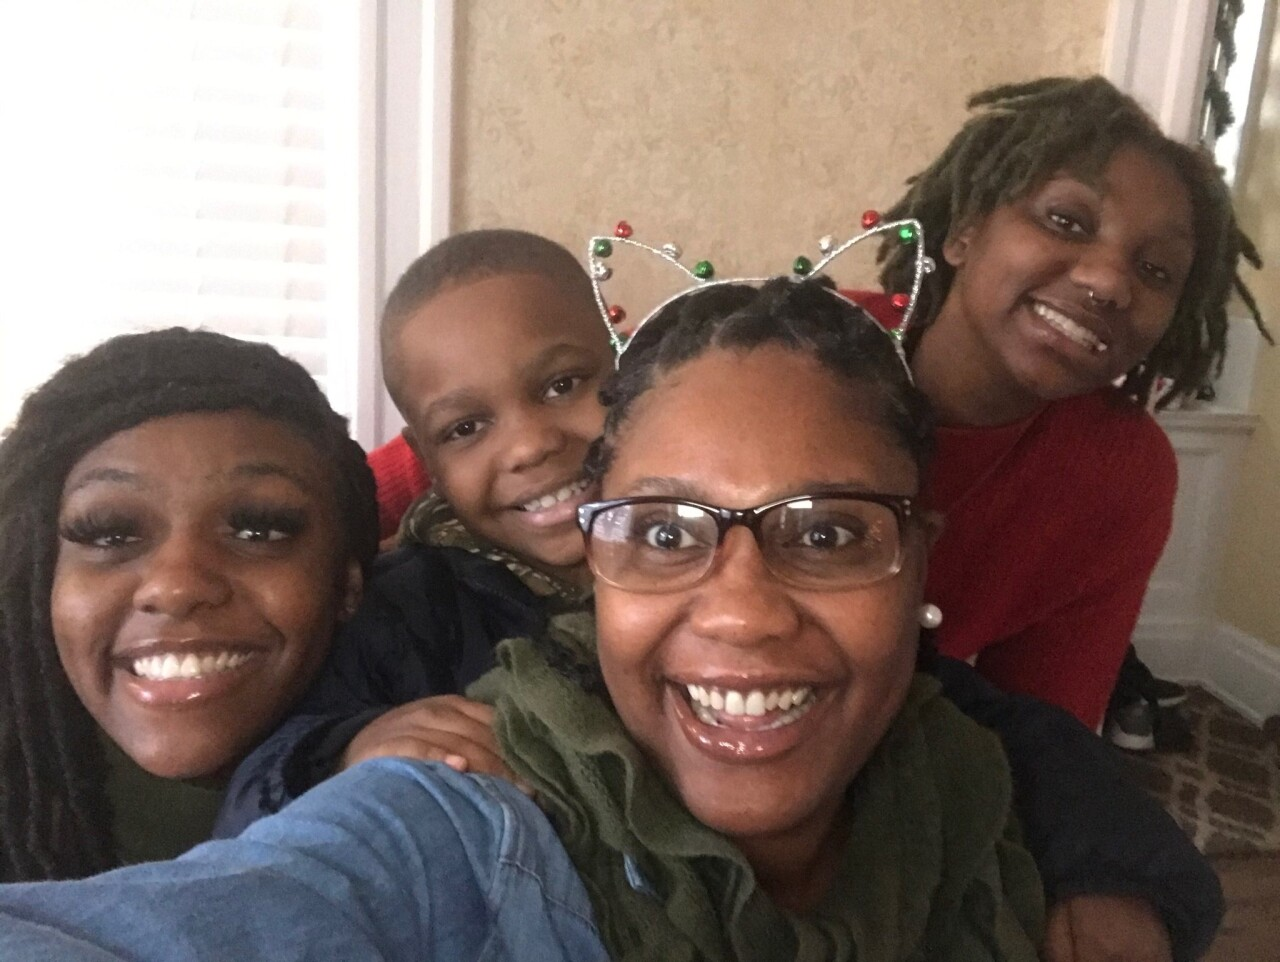 LaTasha Hambrick, second from right, smiles in this selfie with her son and two daughters. Hambrick is wearing glasses and a cat ear hairband.